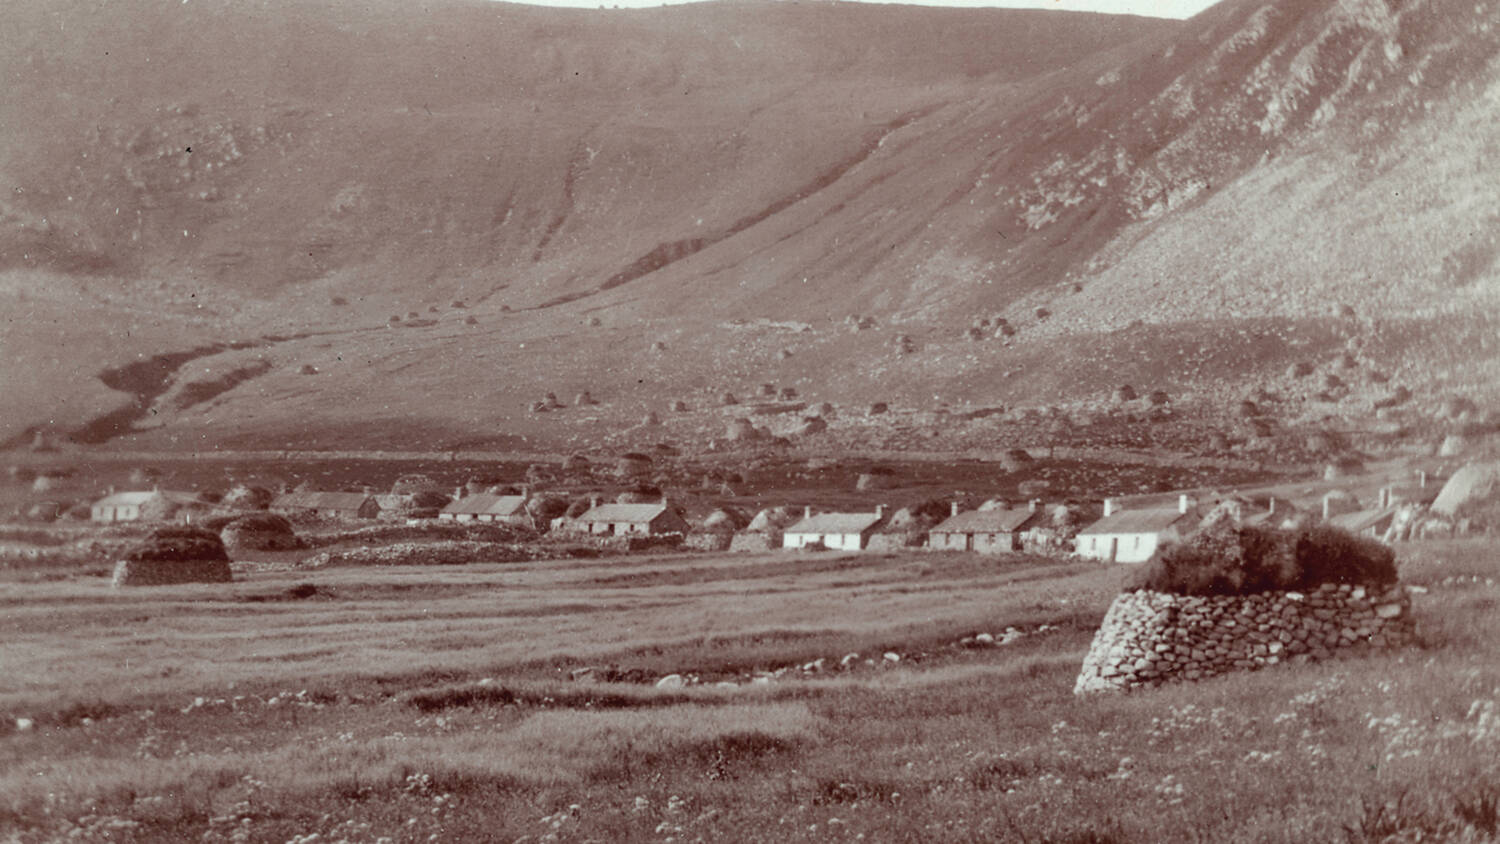 A black and white photo of the village on Hirta.